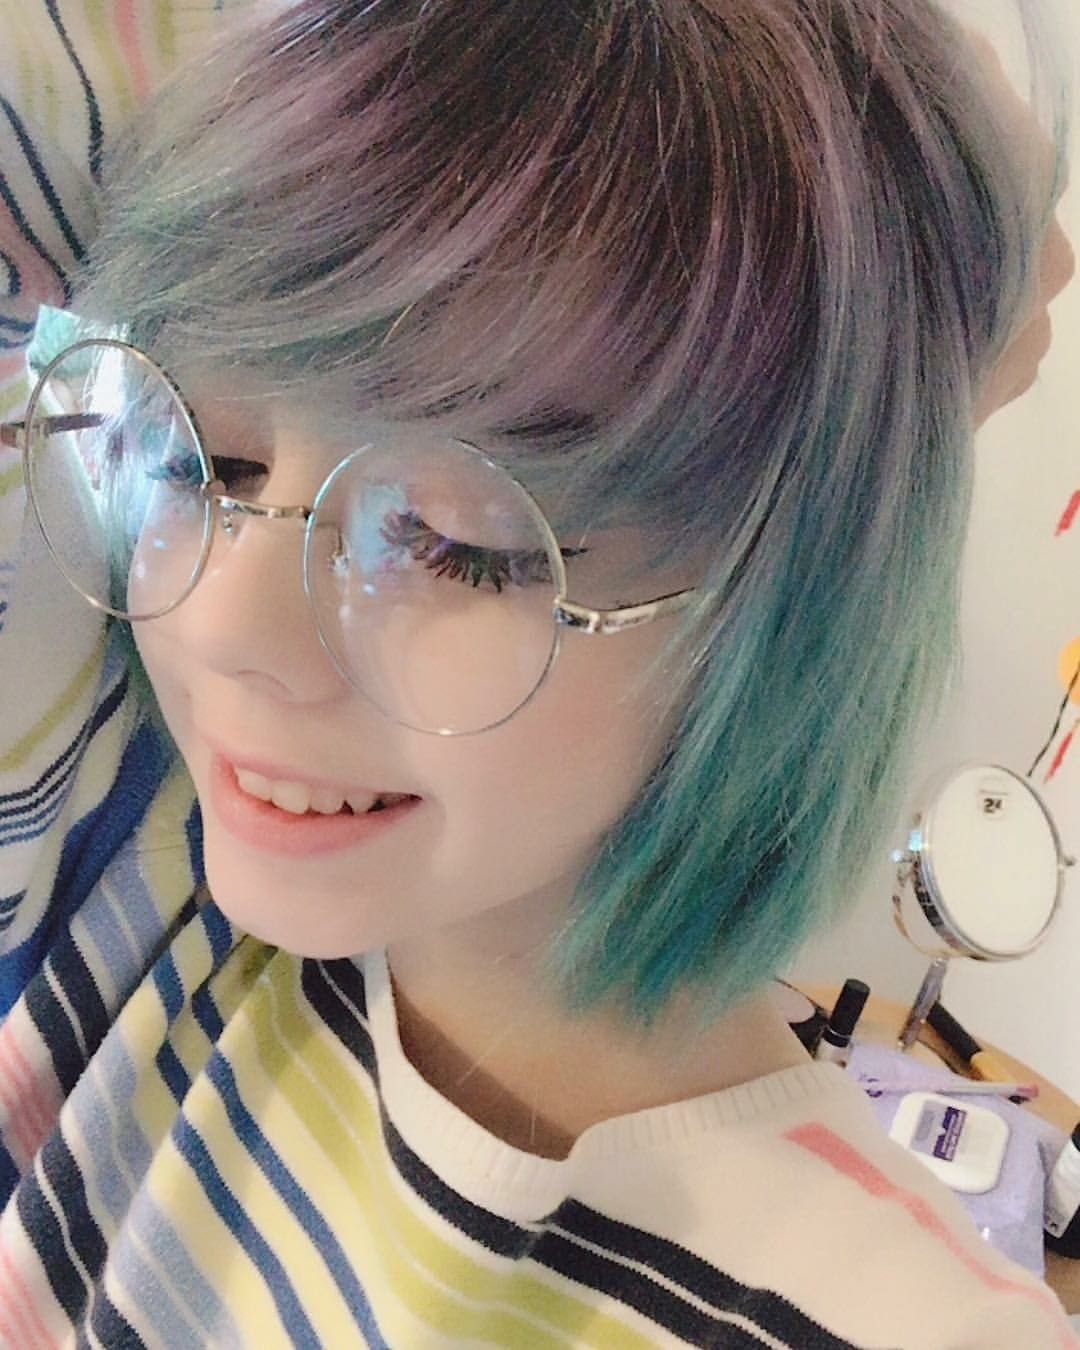 S e n s i t i v e 不同 beautiful girls pinterest ulzzang